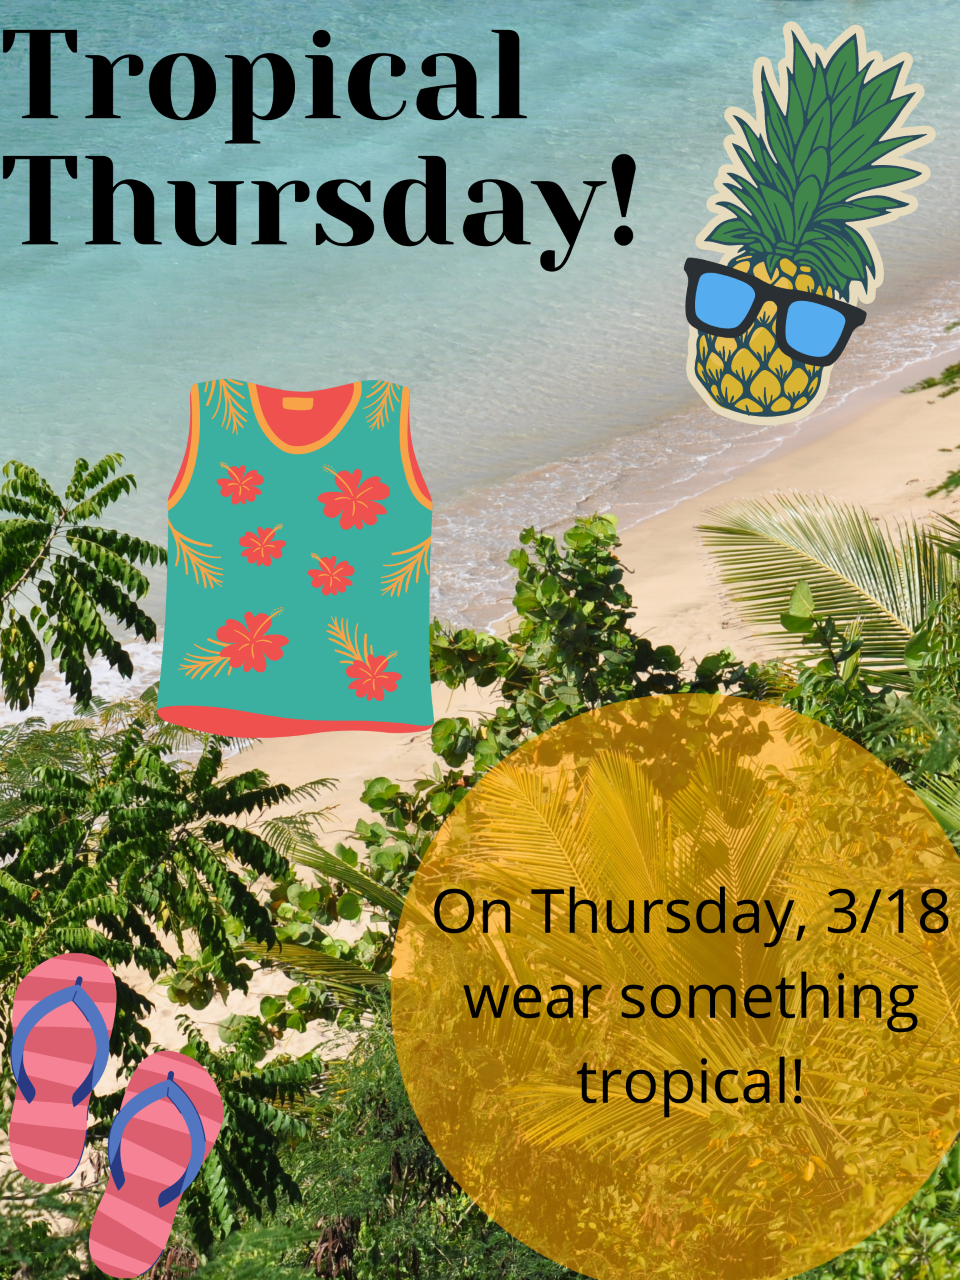 Thurs 3/18: Wear something tropical!